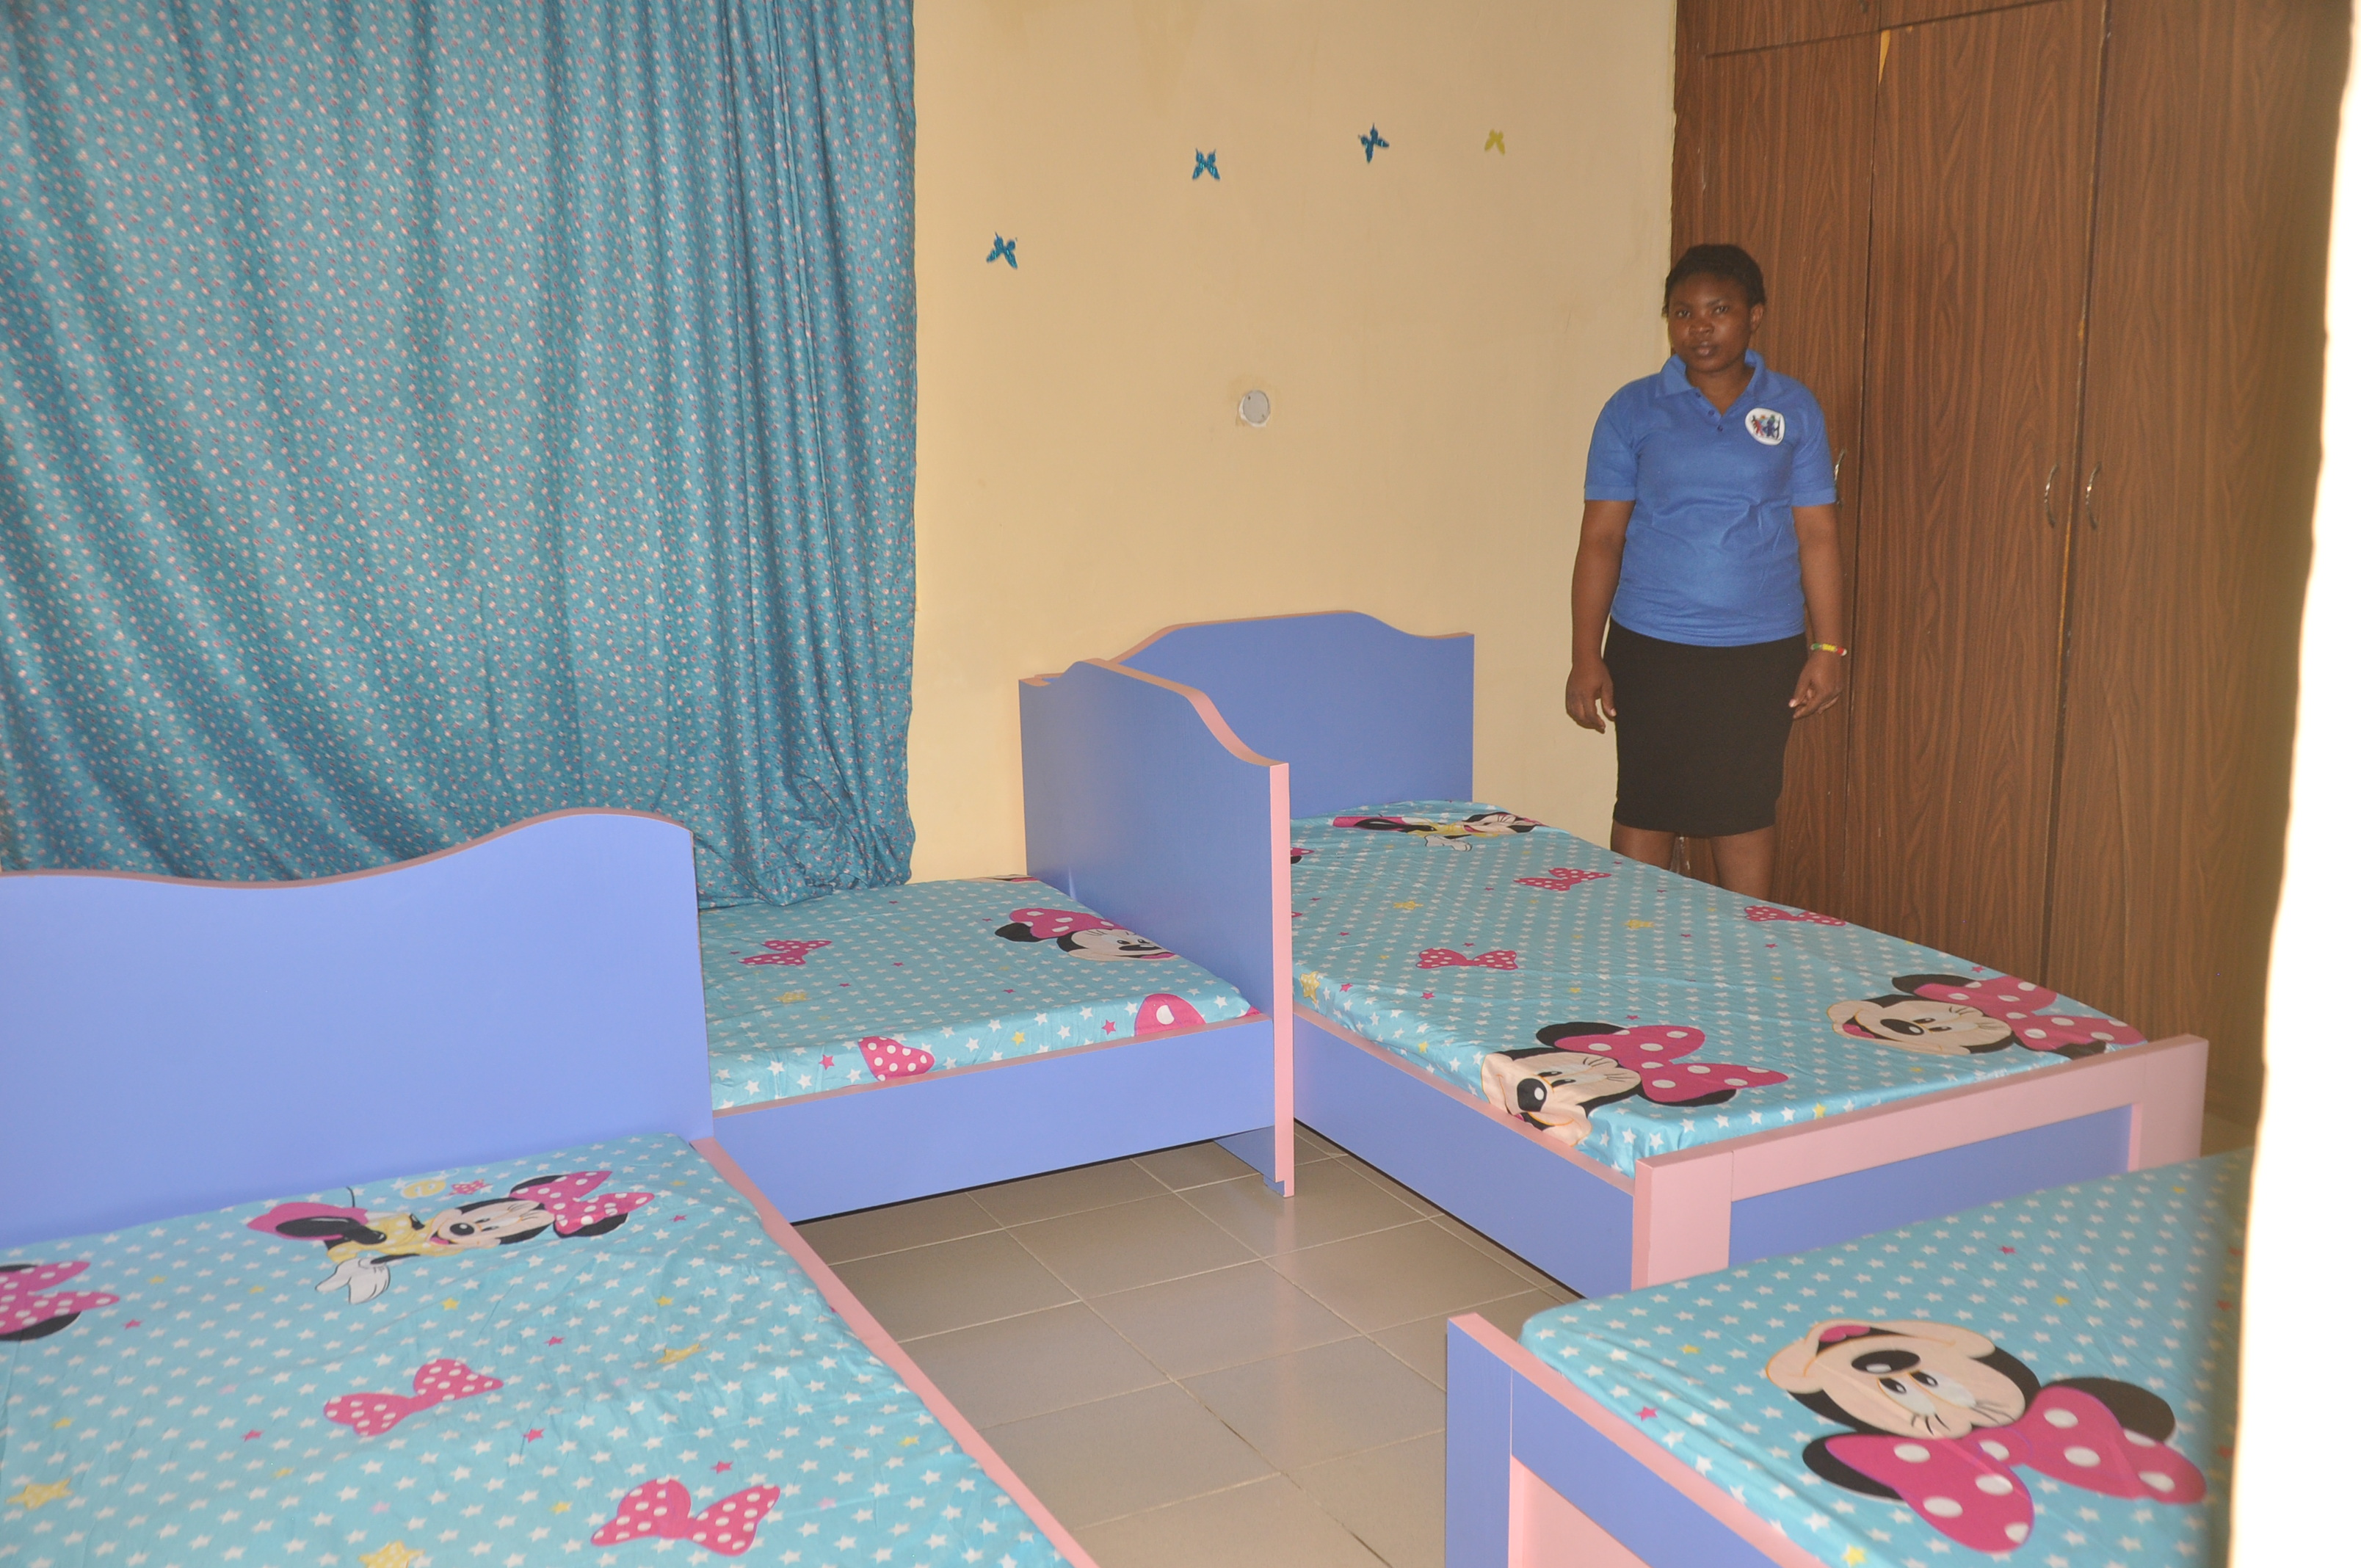 MS BLESSING OKORO (CAREGIVER ASSISTANT BOYS ROOM)